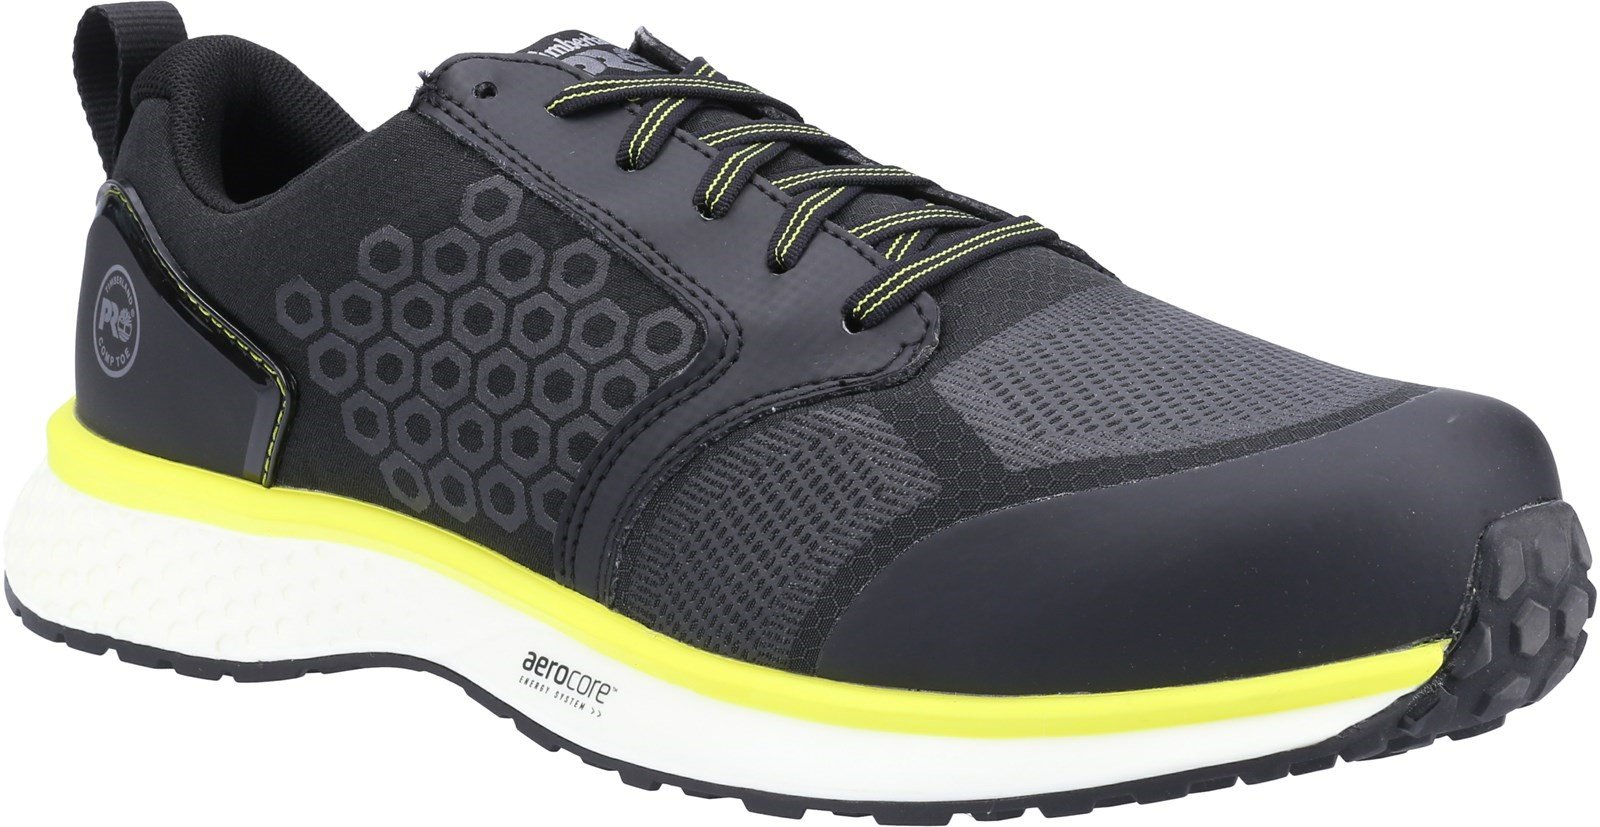 Timberland Pro Men's Reaxion Composite Safety Trainer Various Colours - Black/Yellow 6